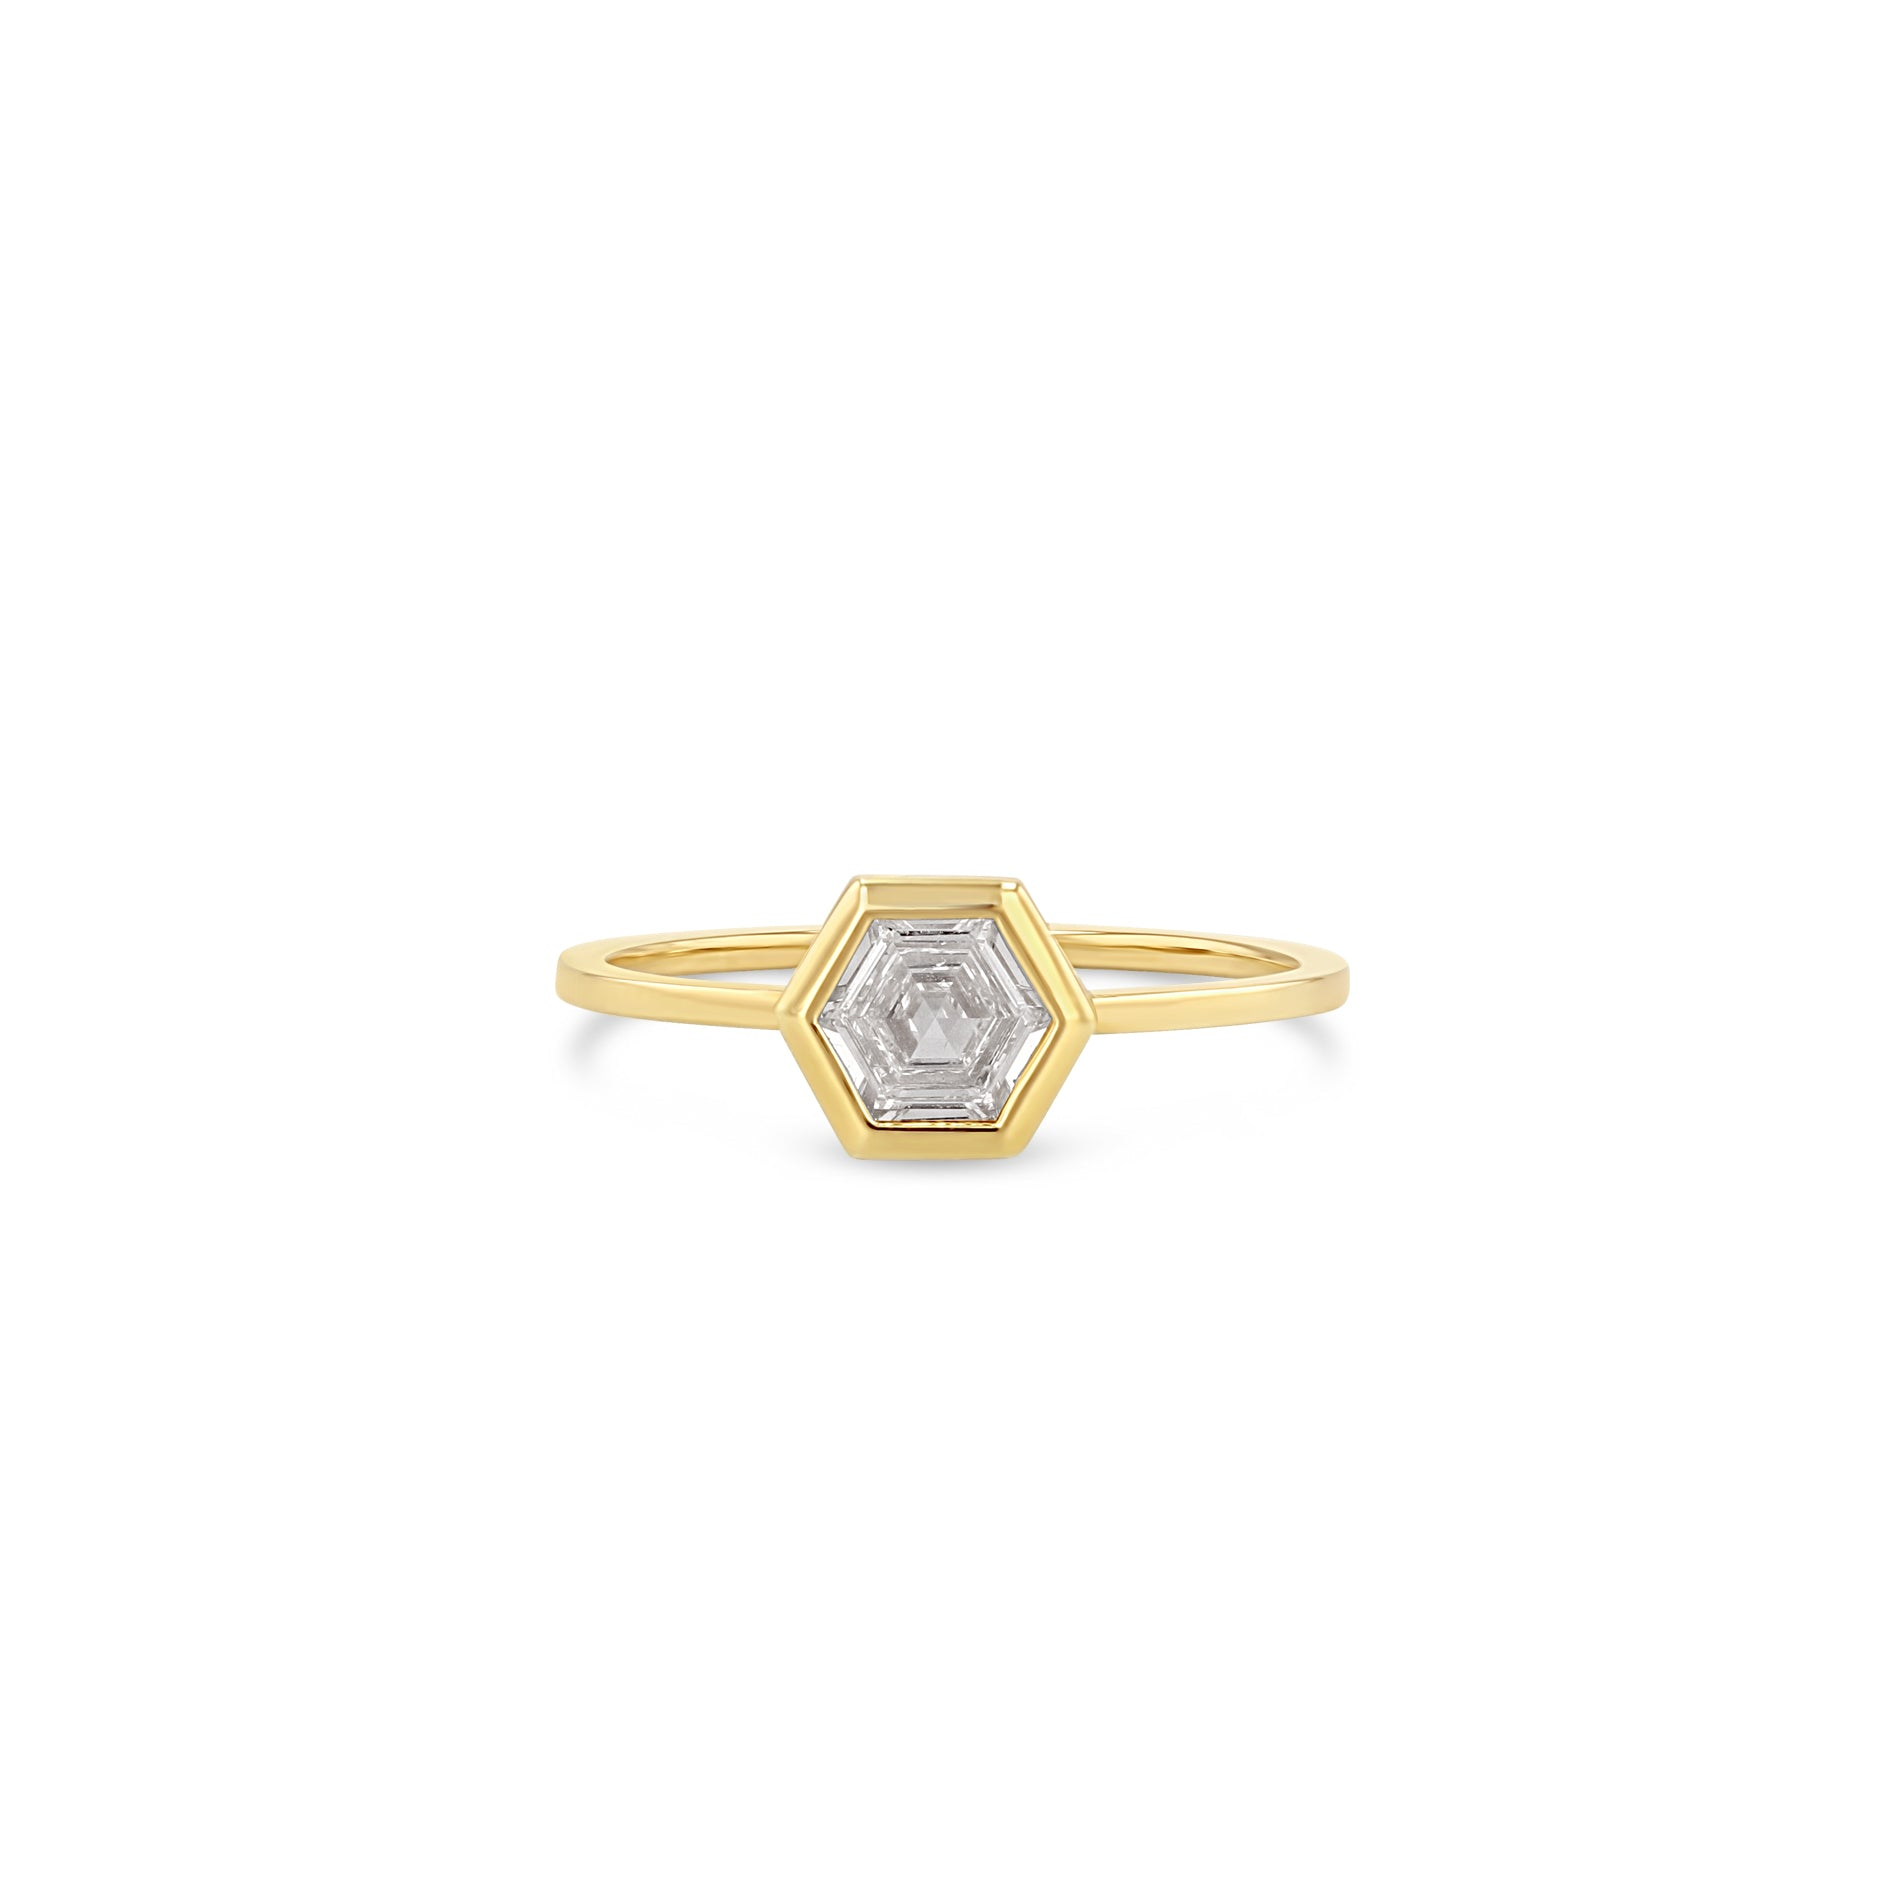 Hex Step Cut Diamond Ring - 0.6